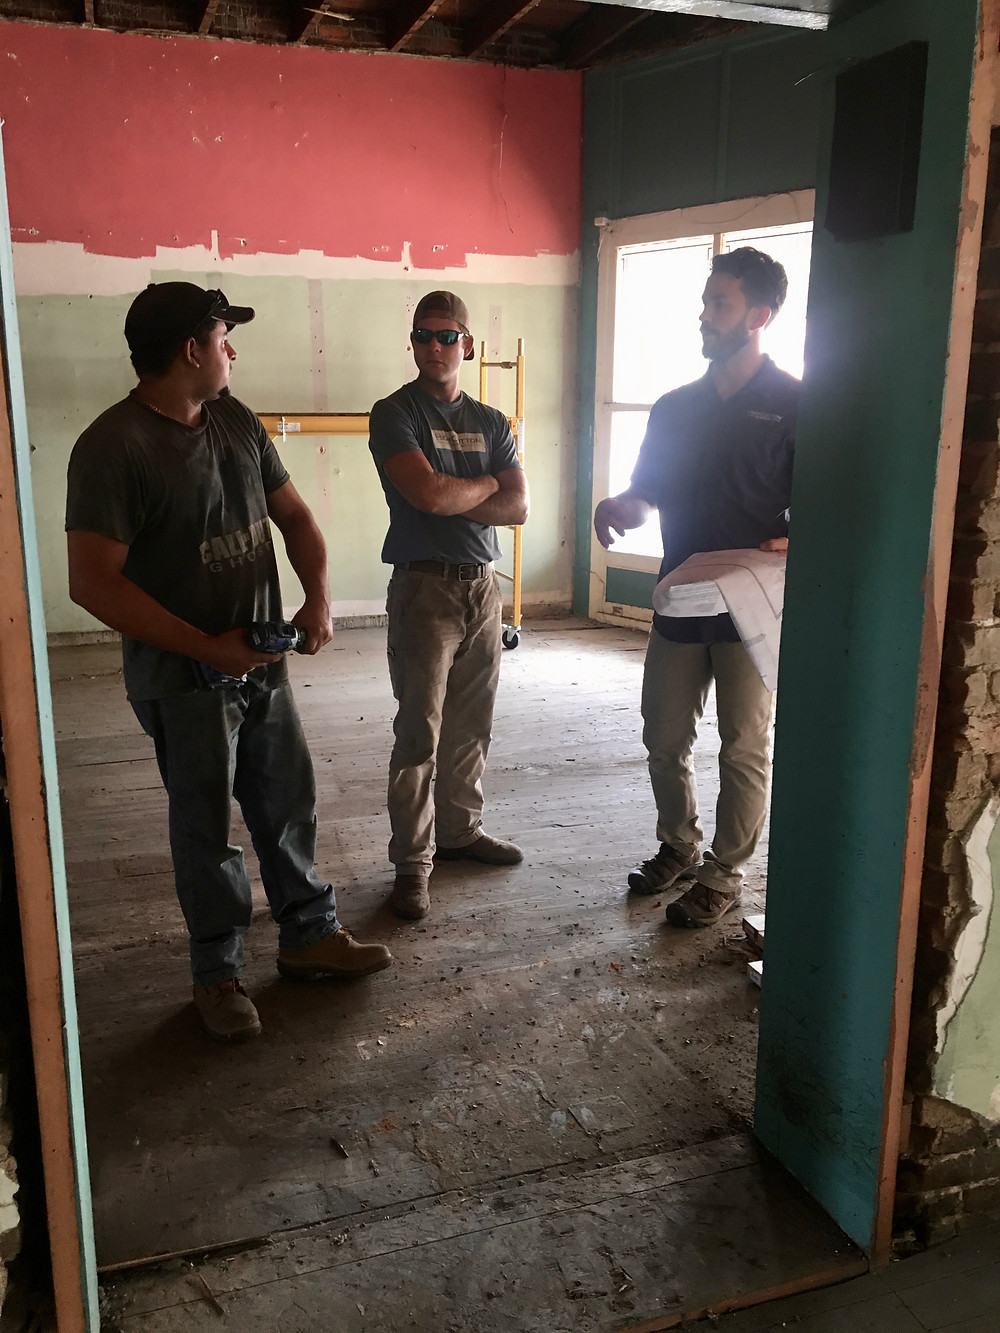 Will King, Adam Kelley, and Josue Rivas discuss the plans at the House of Vacuums